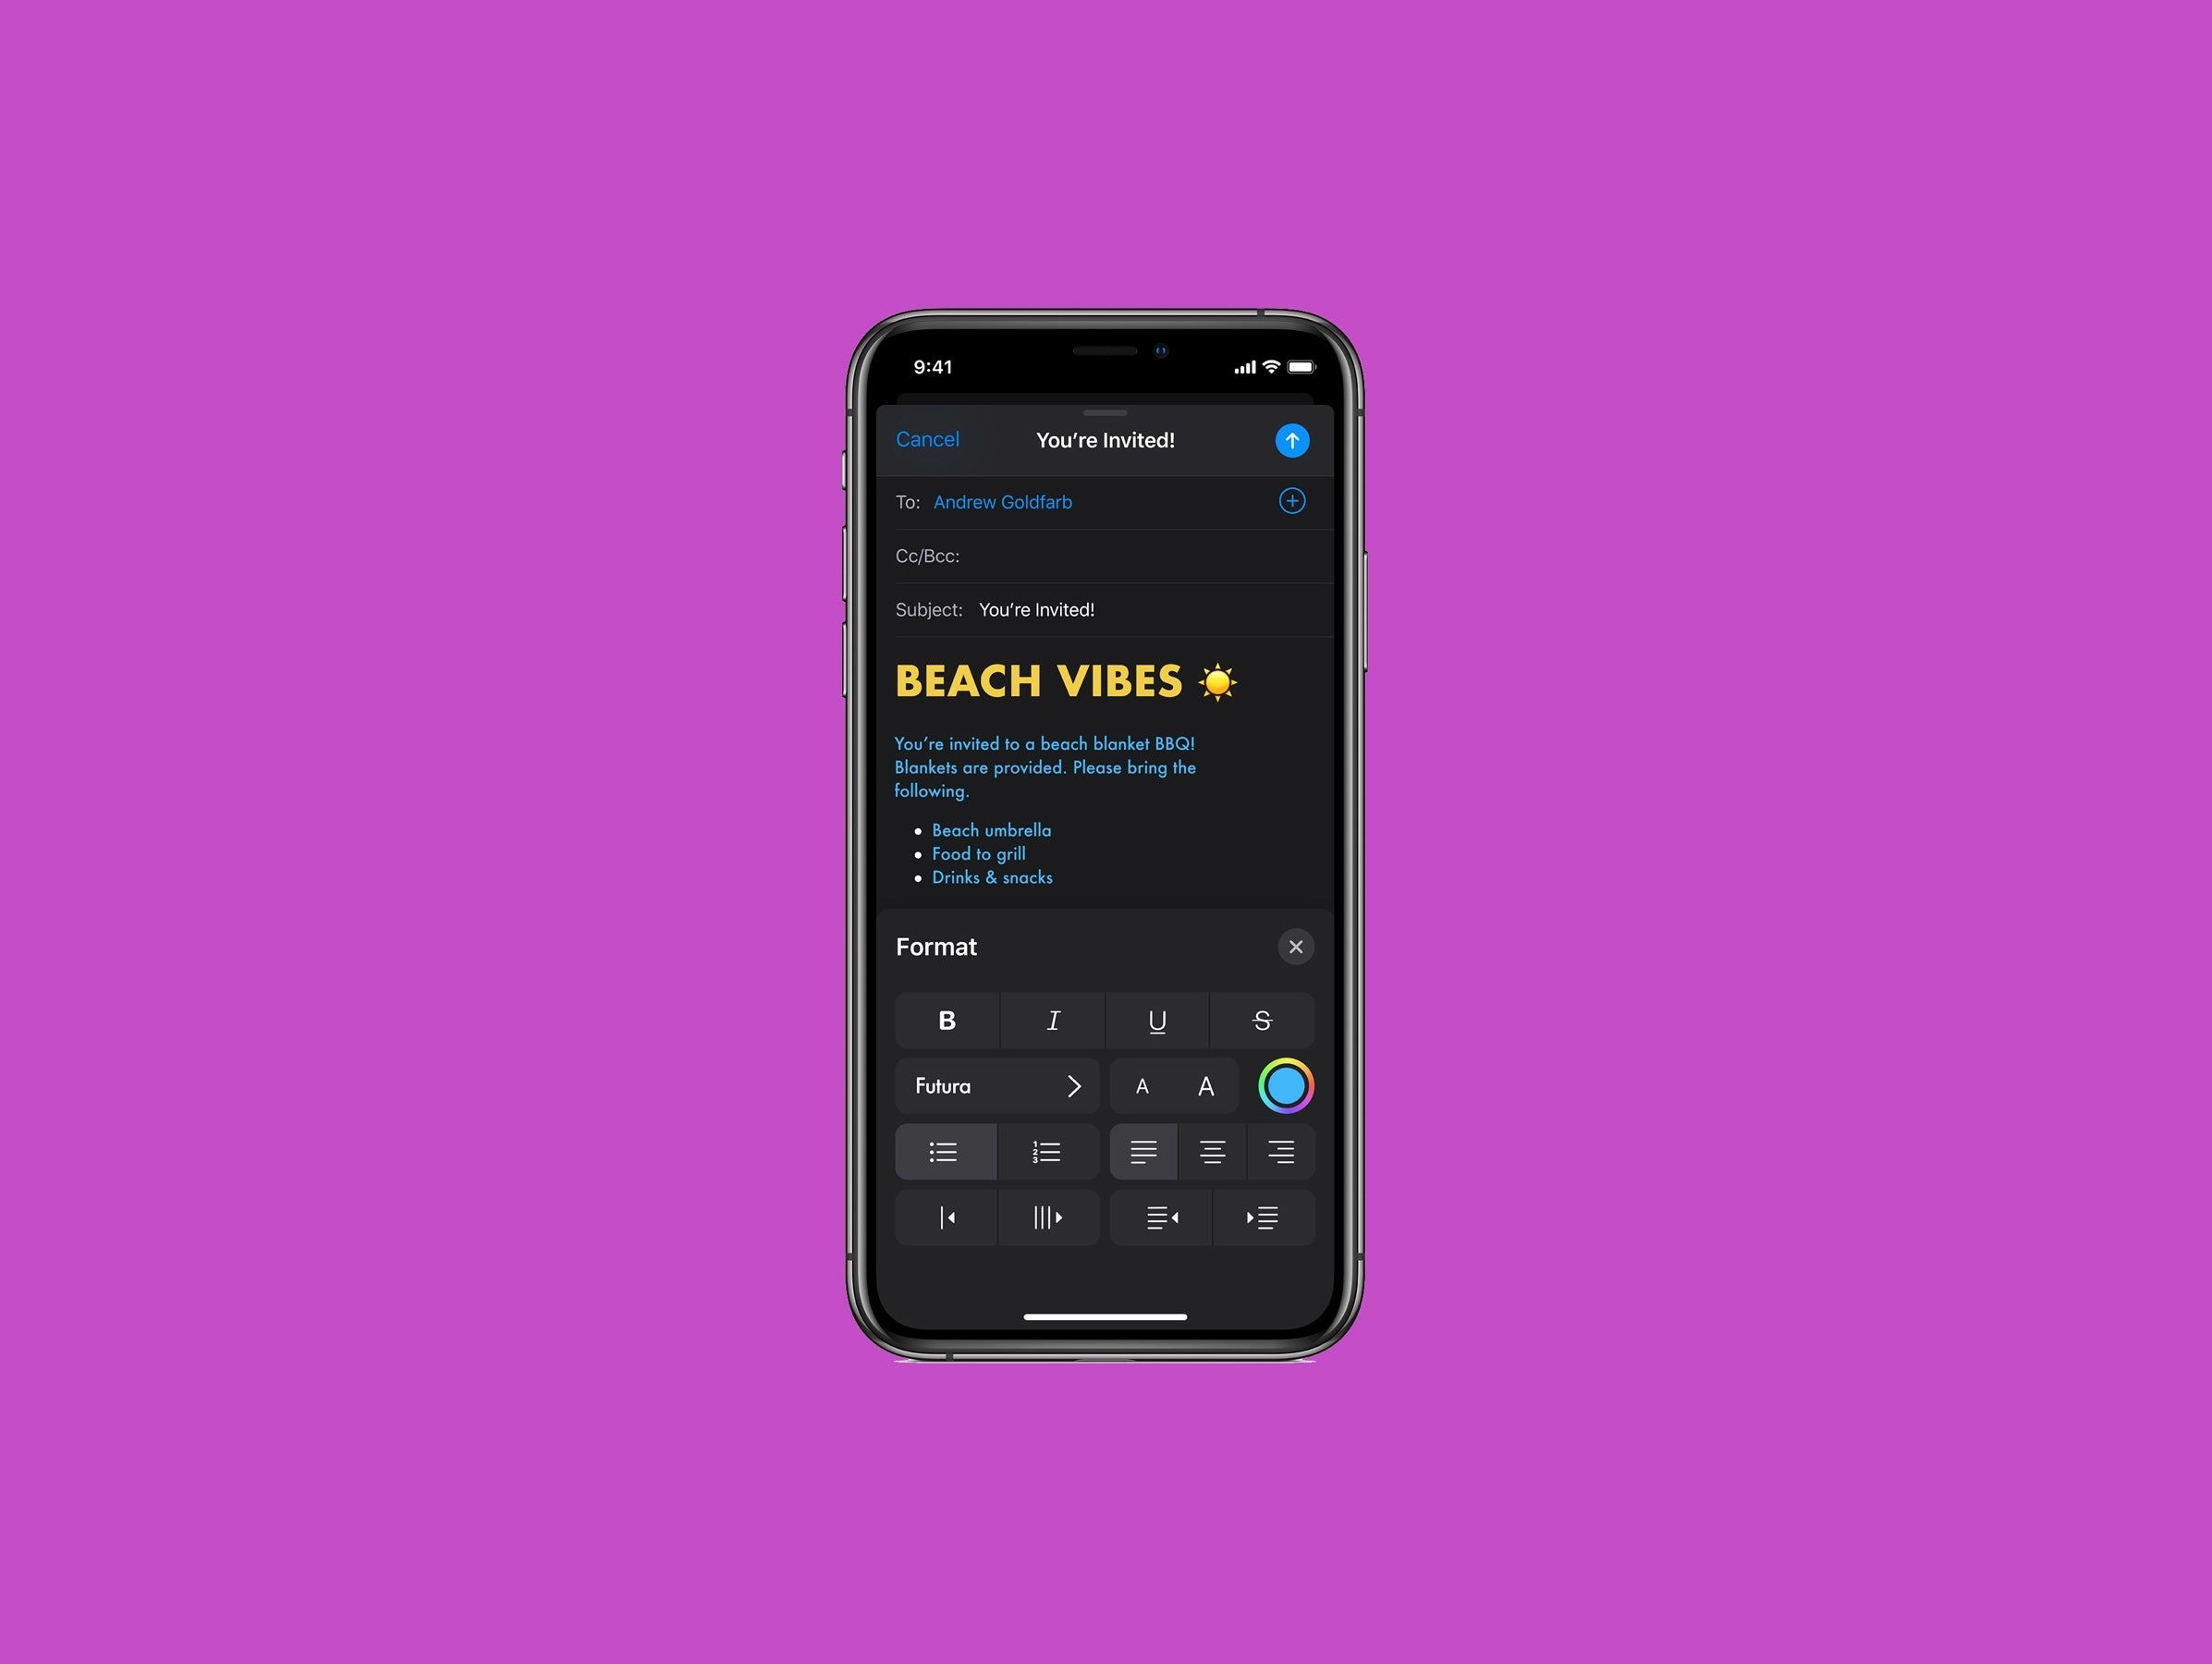 Ios 13 Arrives, But Not Without Some Bugs | Wired